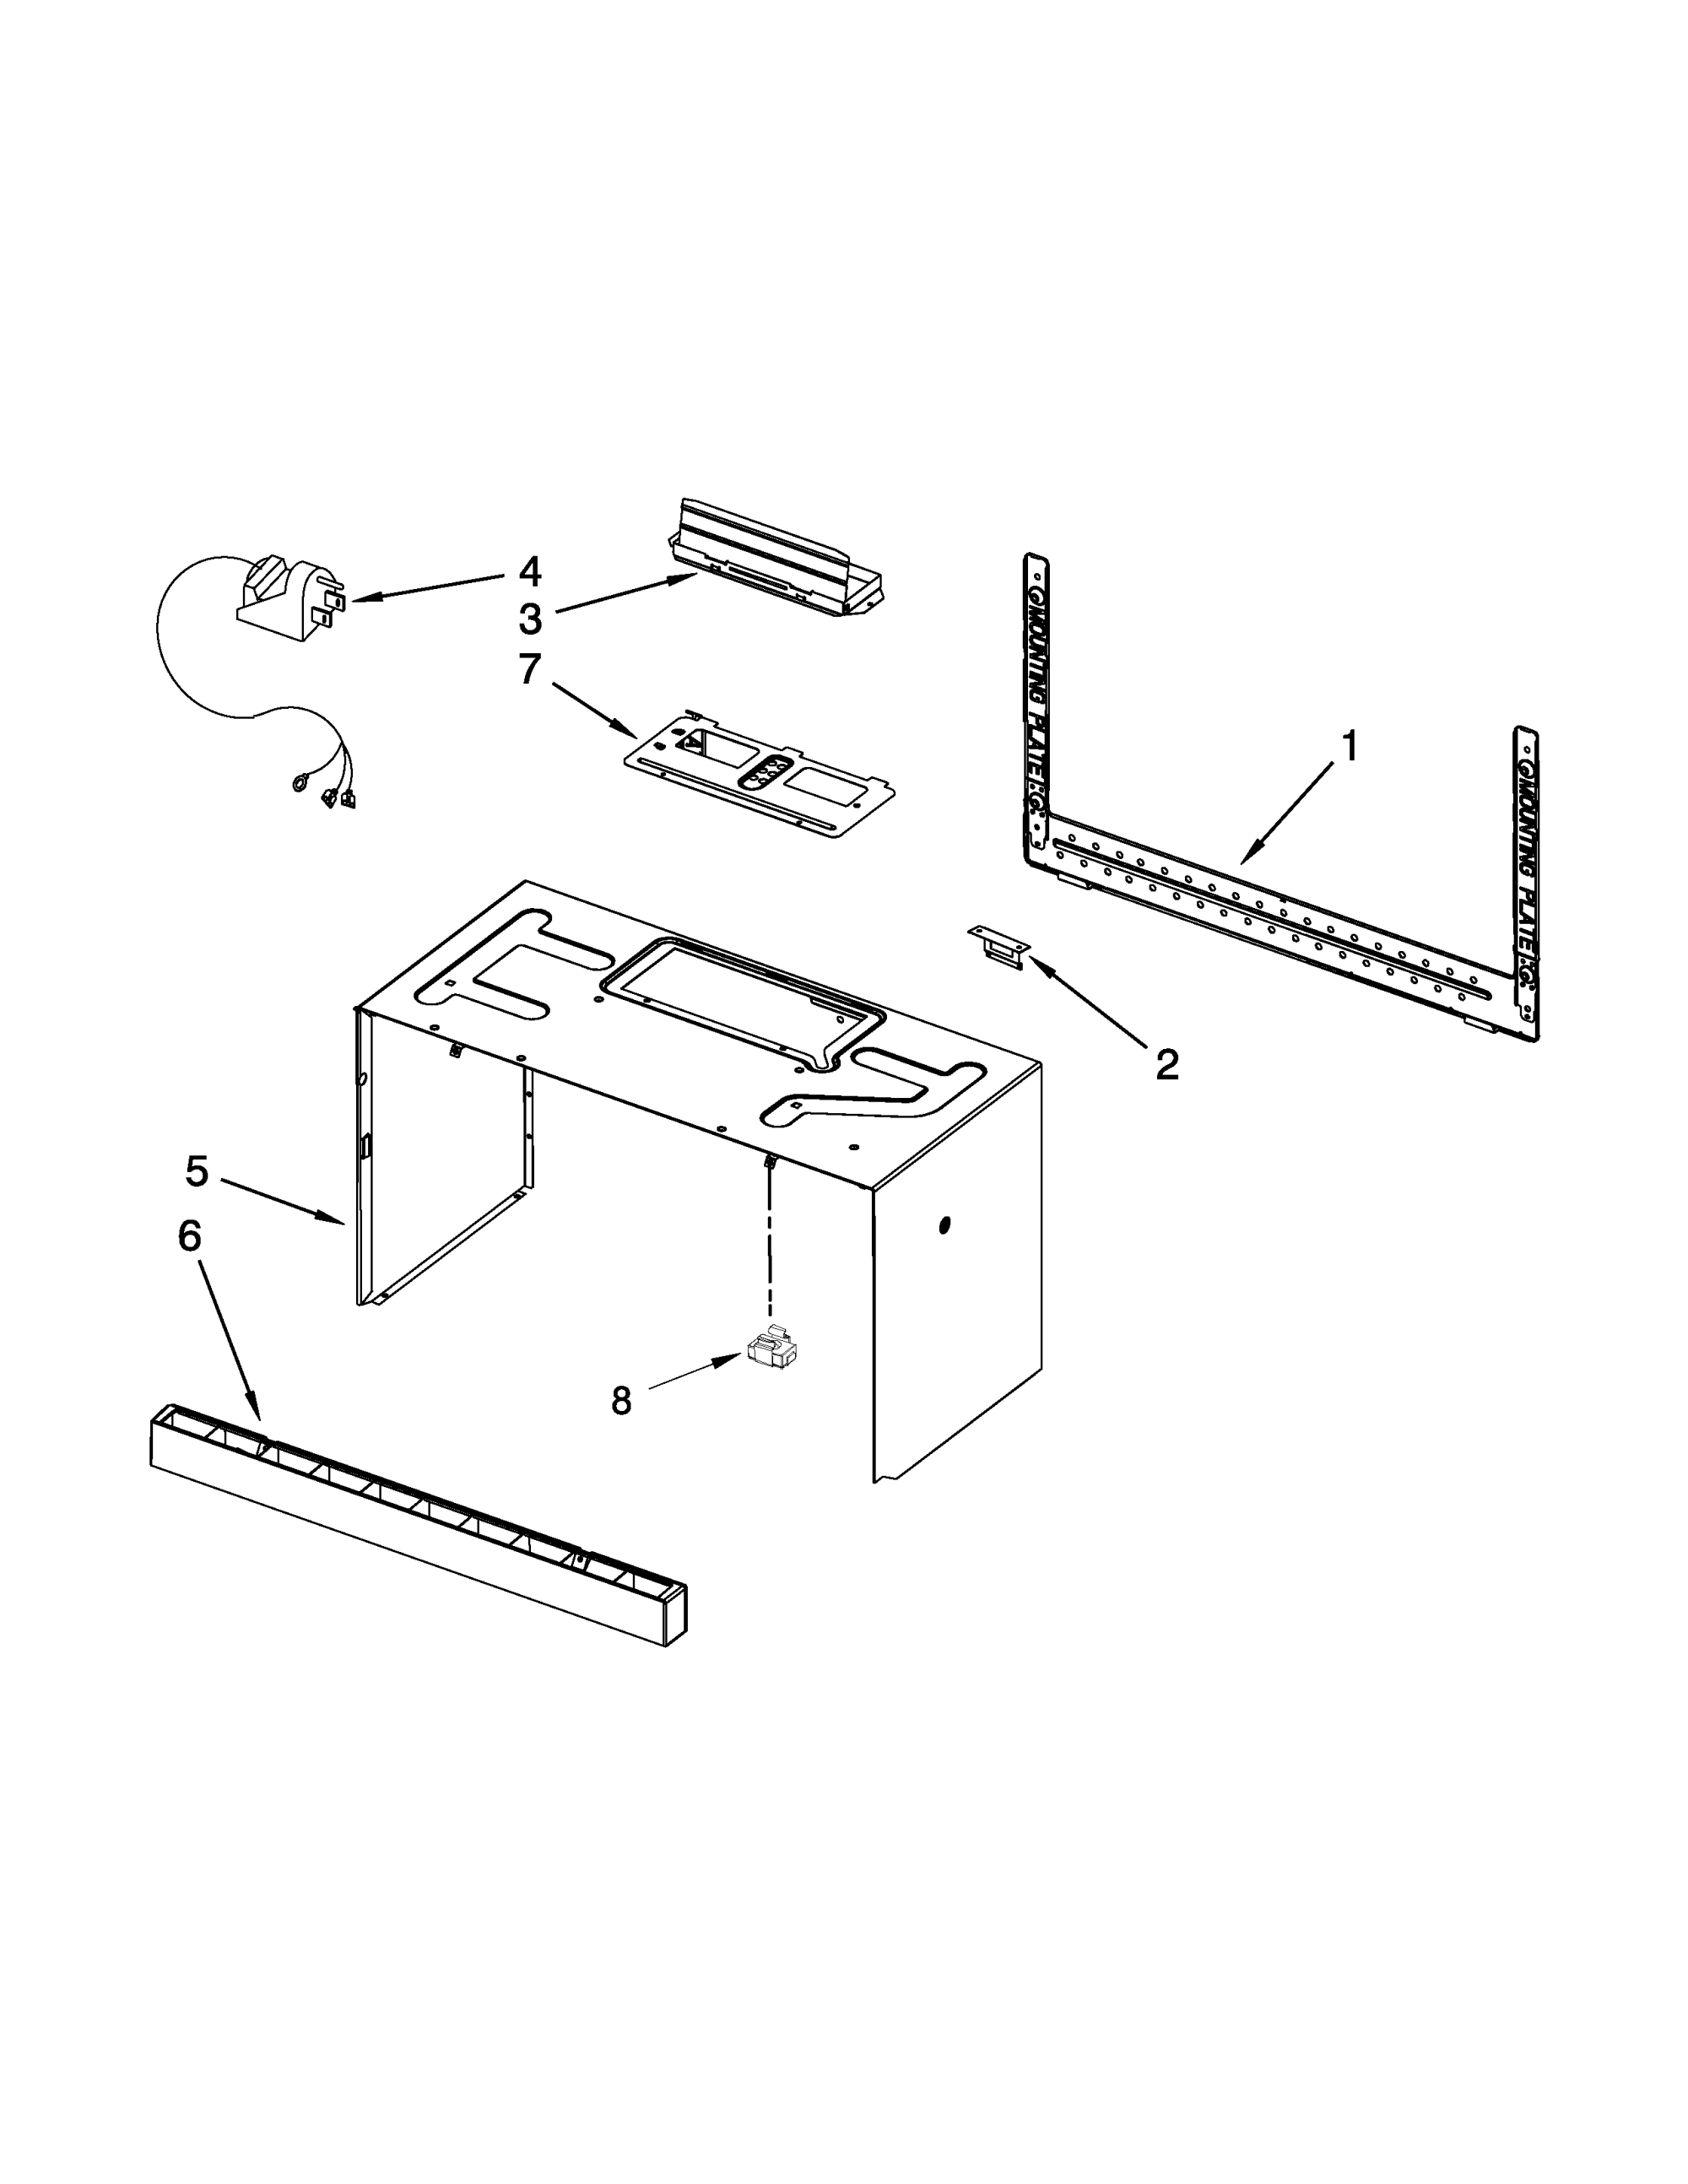 hight resolution of maytag mmv5208ww1 cabinet and installation parts diagram